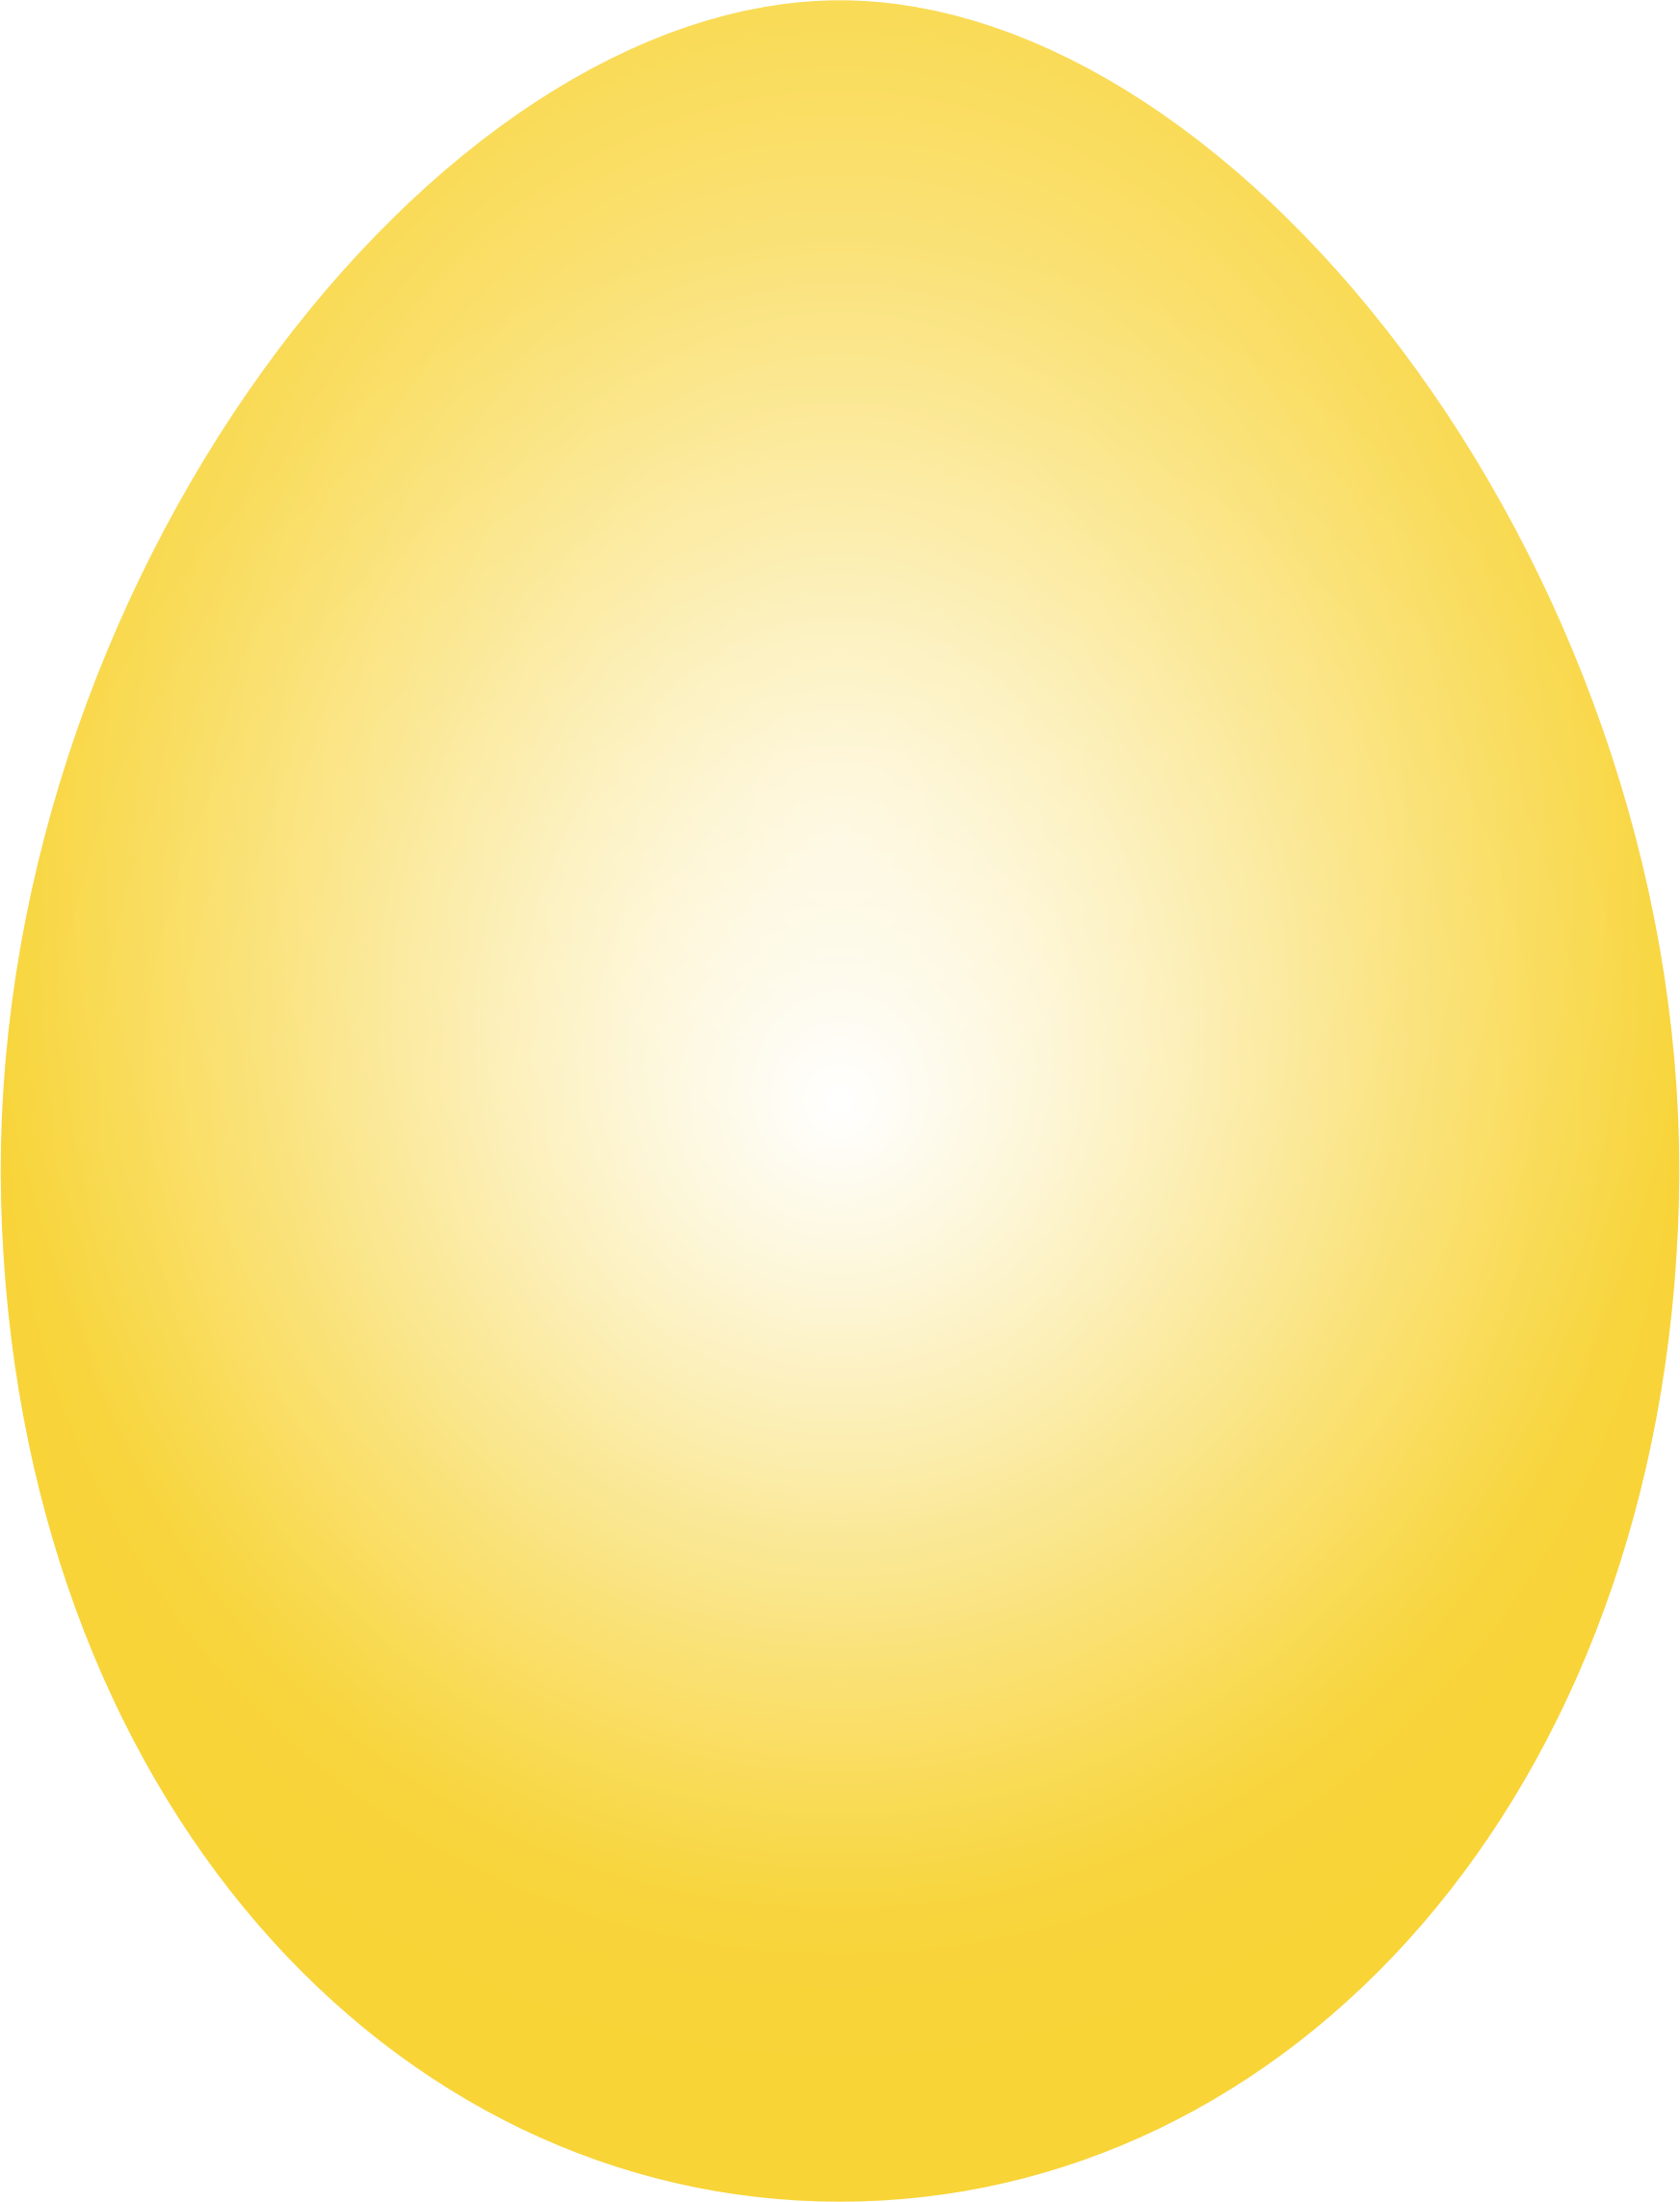 Yellow Easter Egg by GDJ